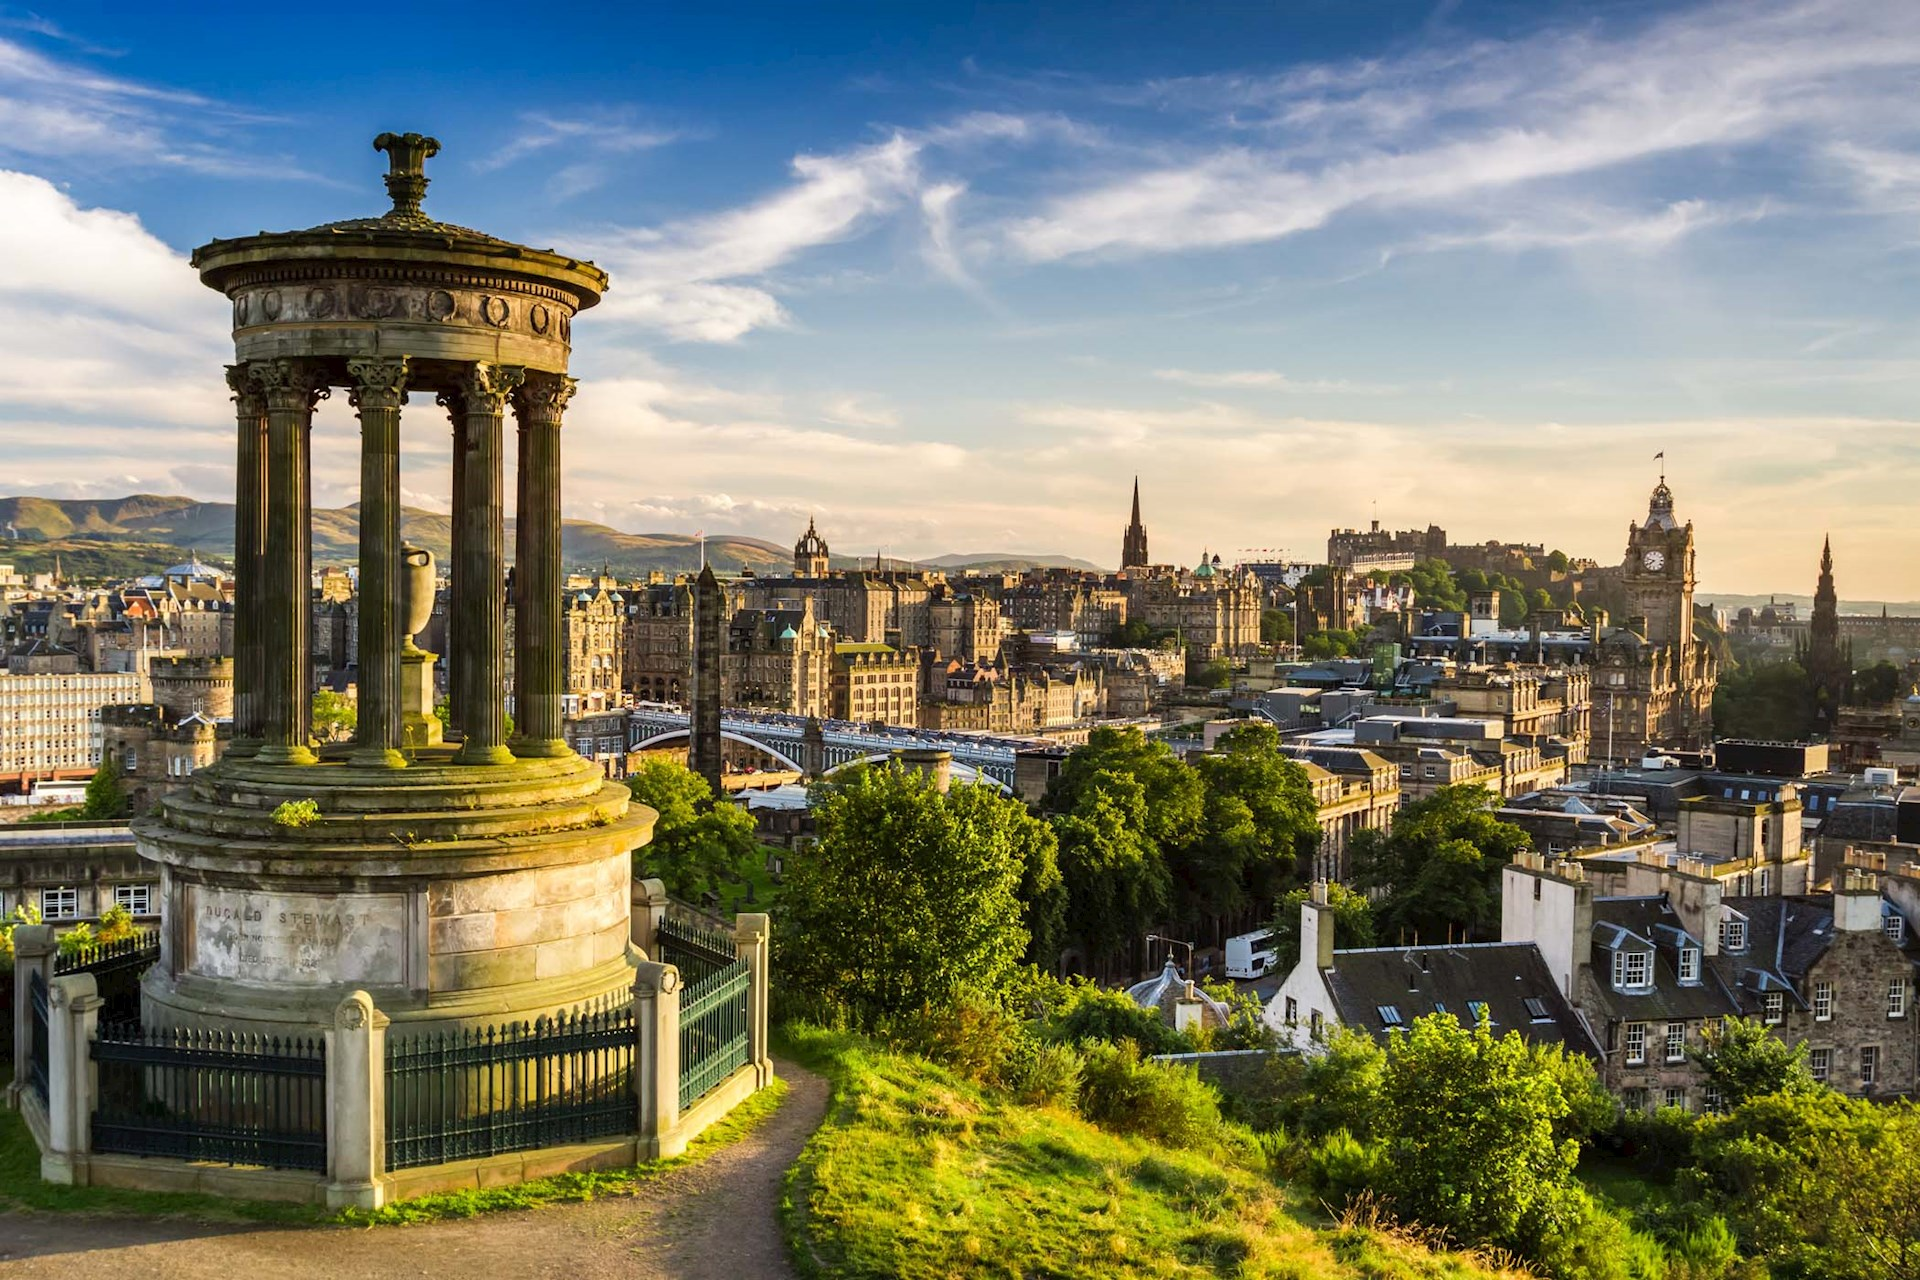 Overlooking city in Calton Hill in Edinburgh